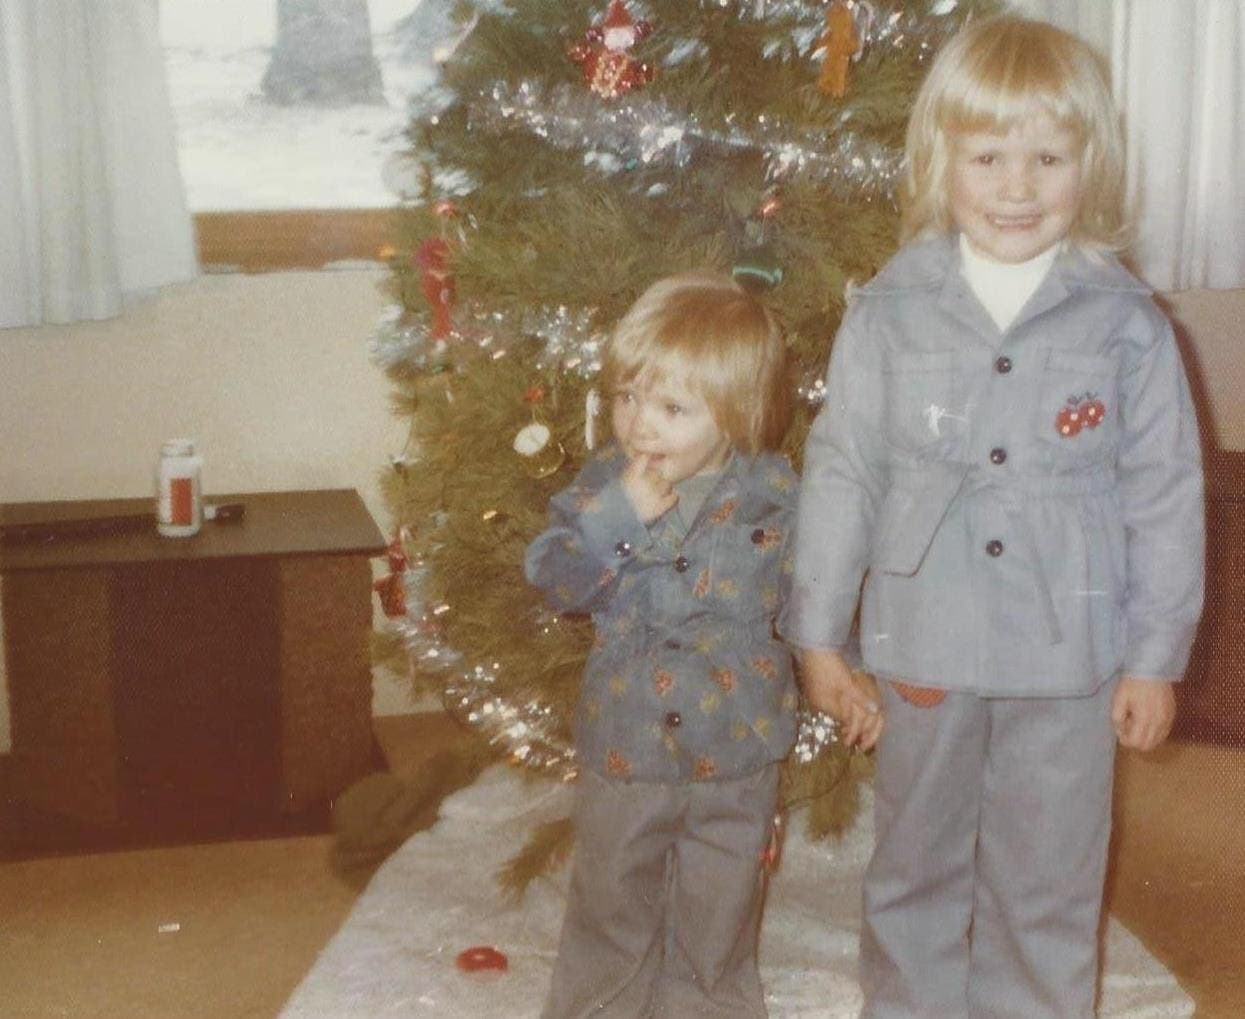 Nici Lucas & Andi Lucas, Sisters and Co-Founders of The Days of Gifts